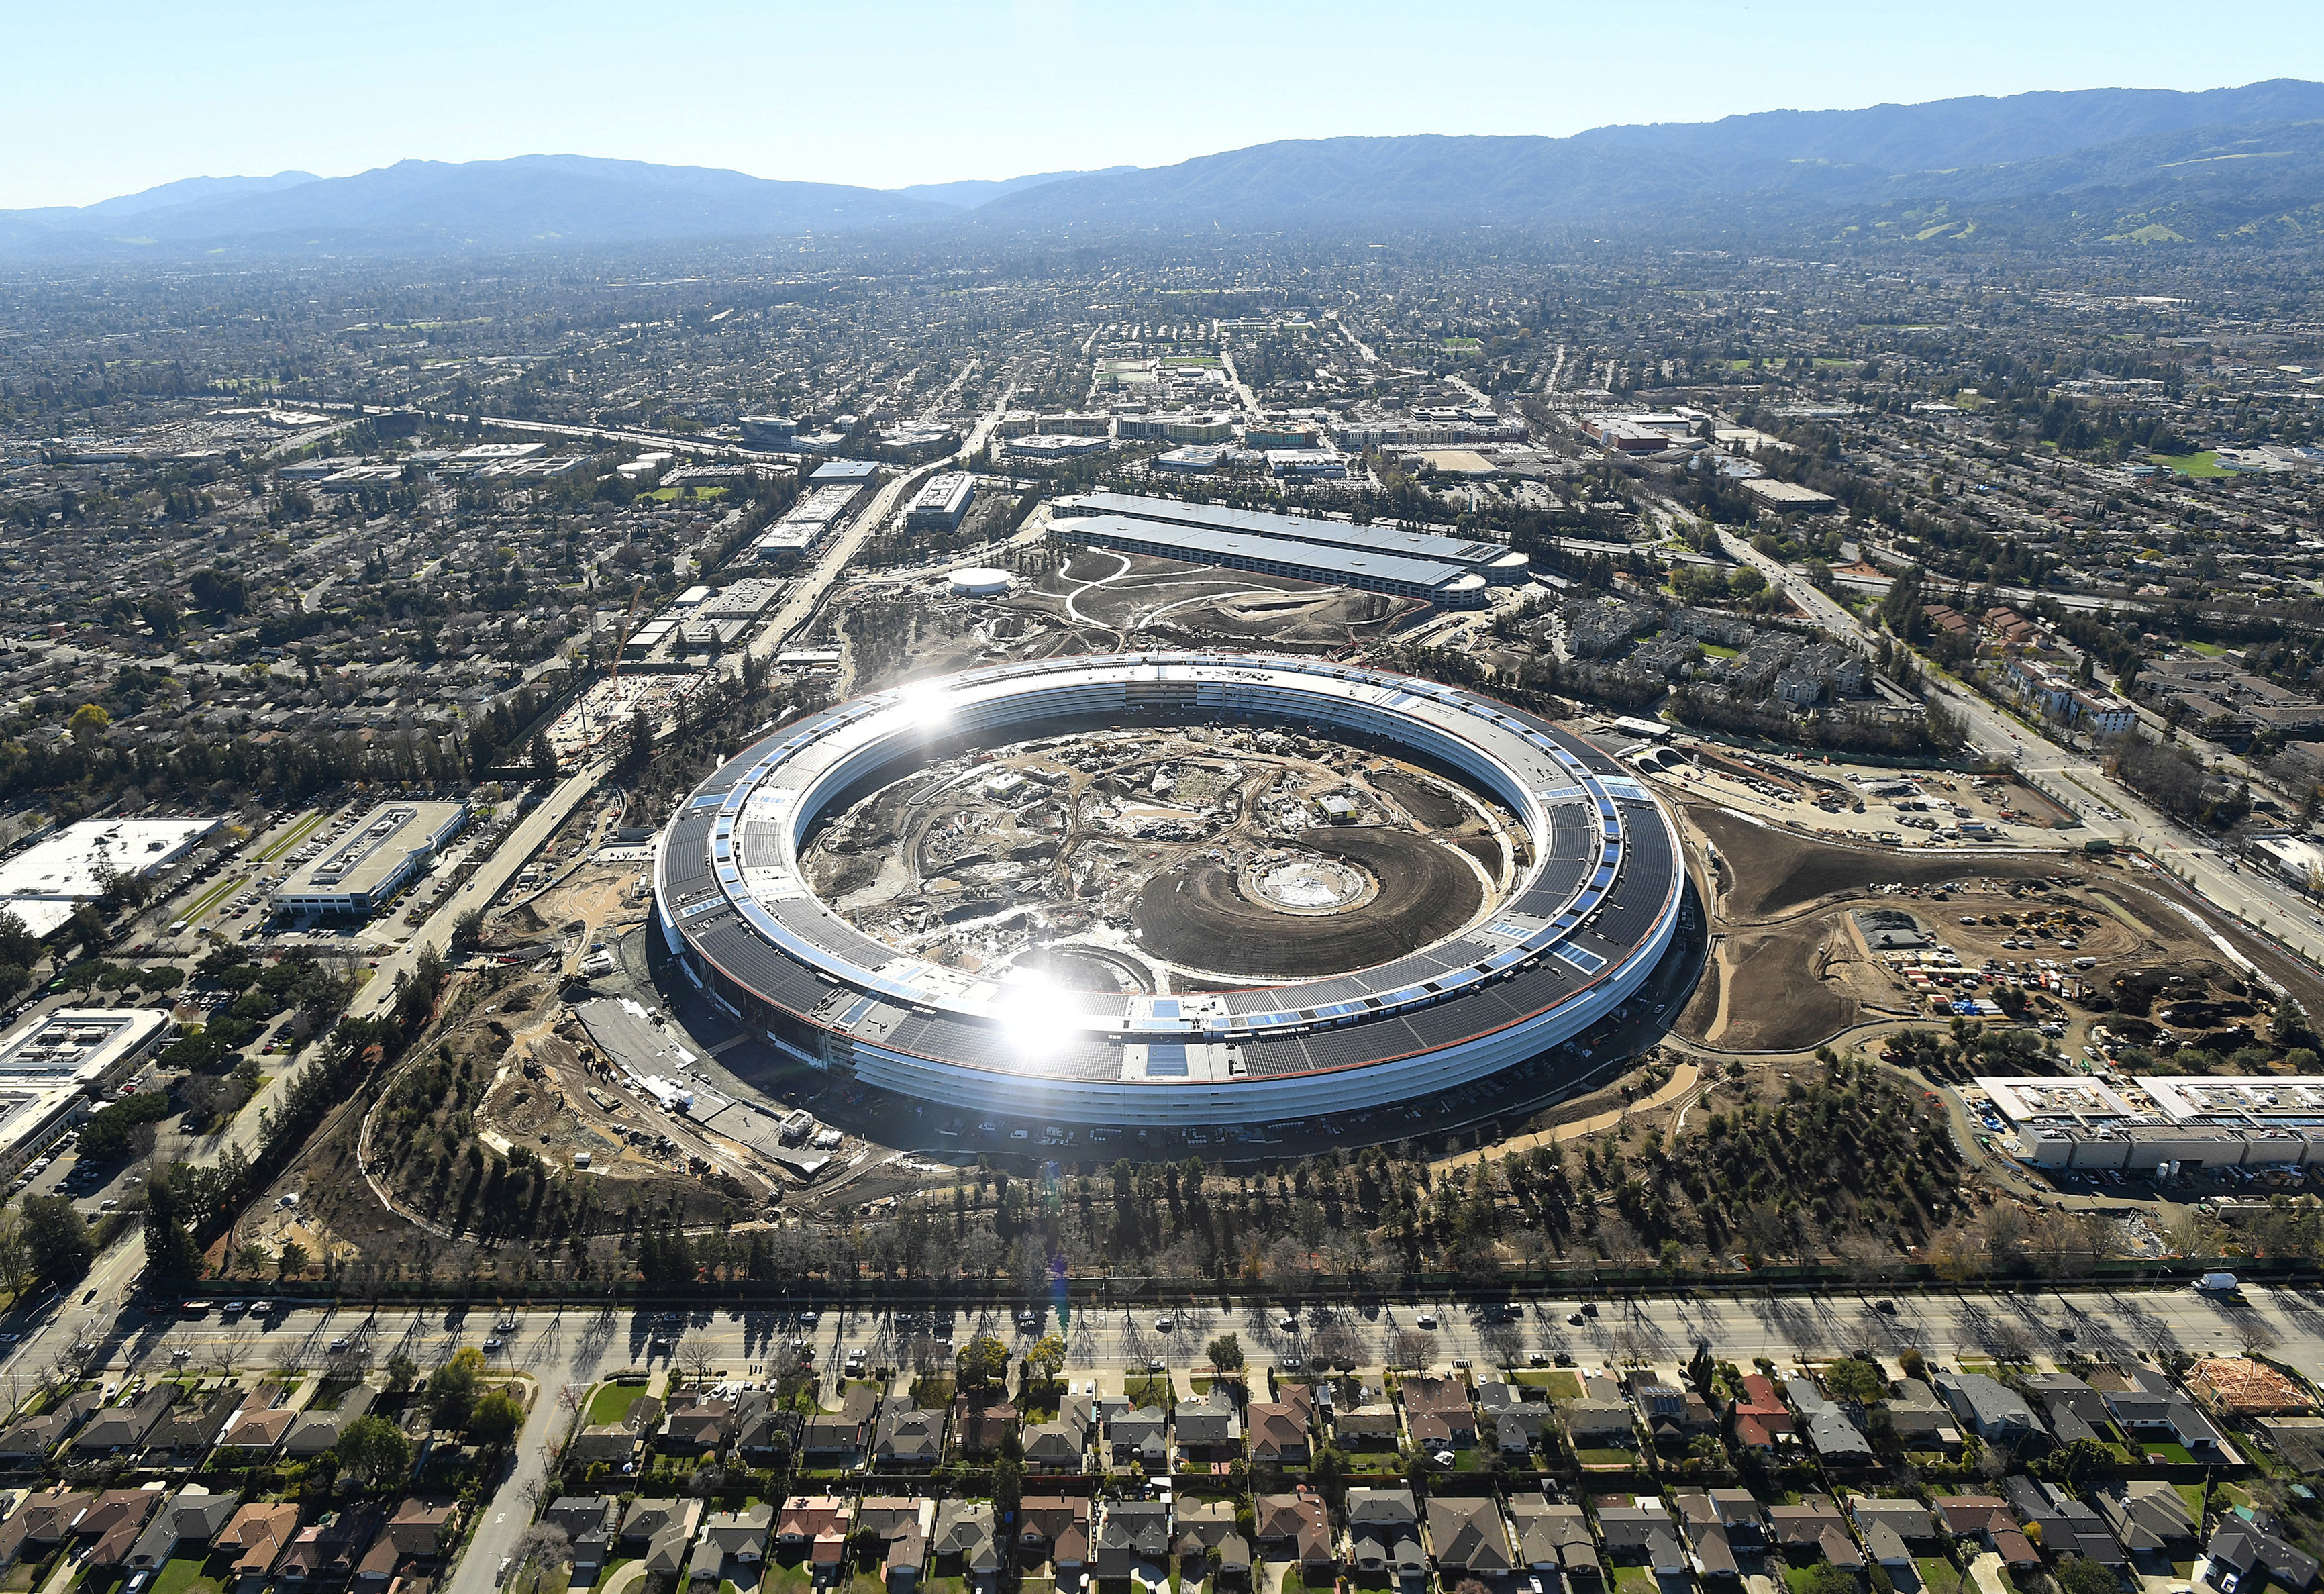 The Apple Campus 2 is seen under construction in Cupertino, California in this aerial photo taken January 13, 2017. REUTERS/Noah Berger - RC1902519C80